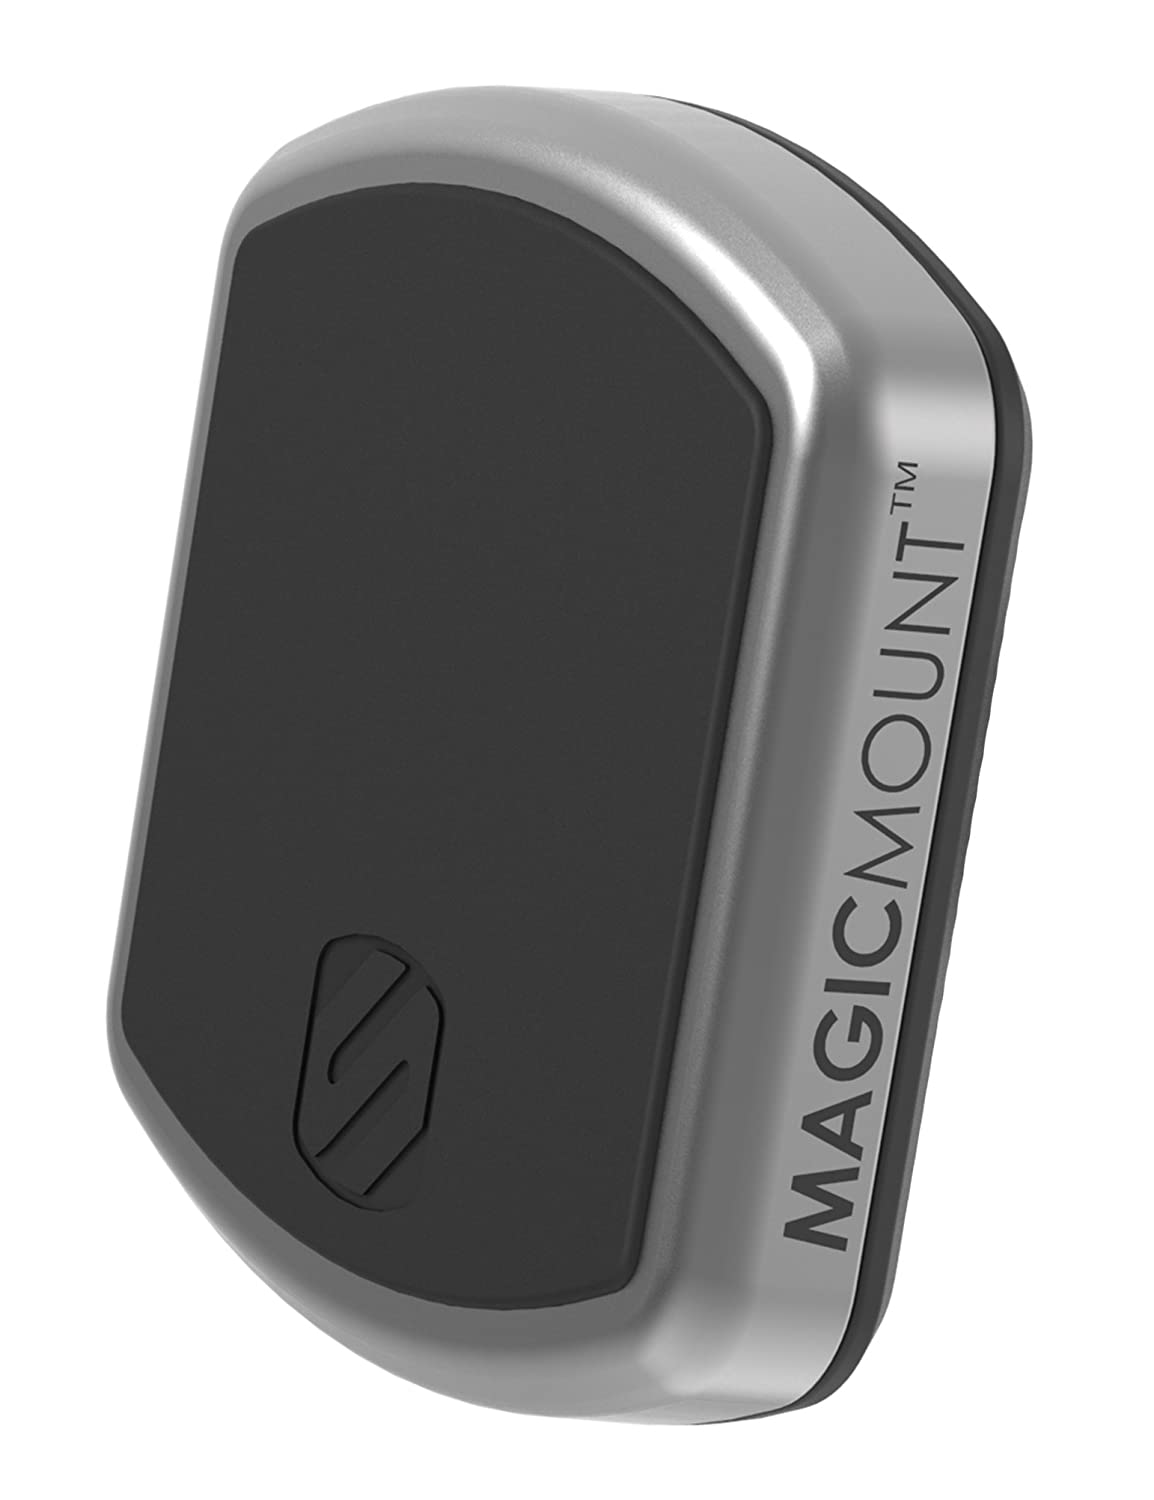 SCOSCHE MPTFM MagicMount Pro XL Universal Magnetic Phone/GPS/Tablet Mount for The Car, Home or Office